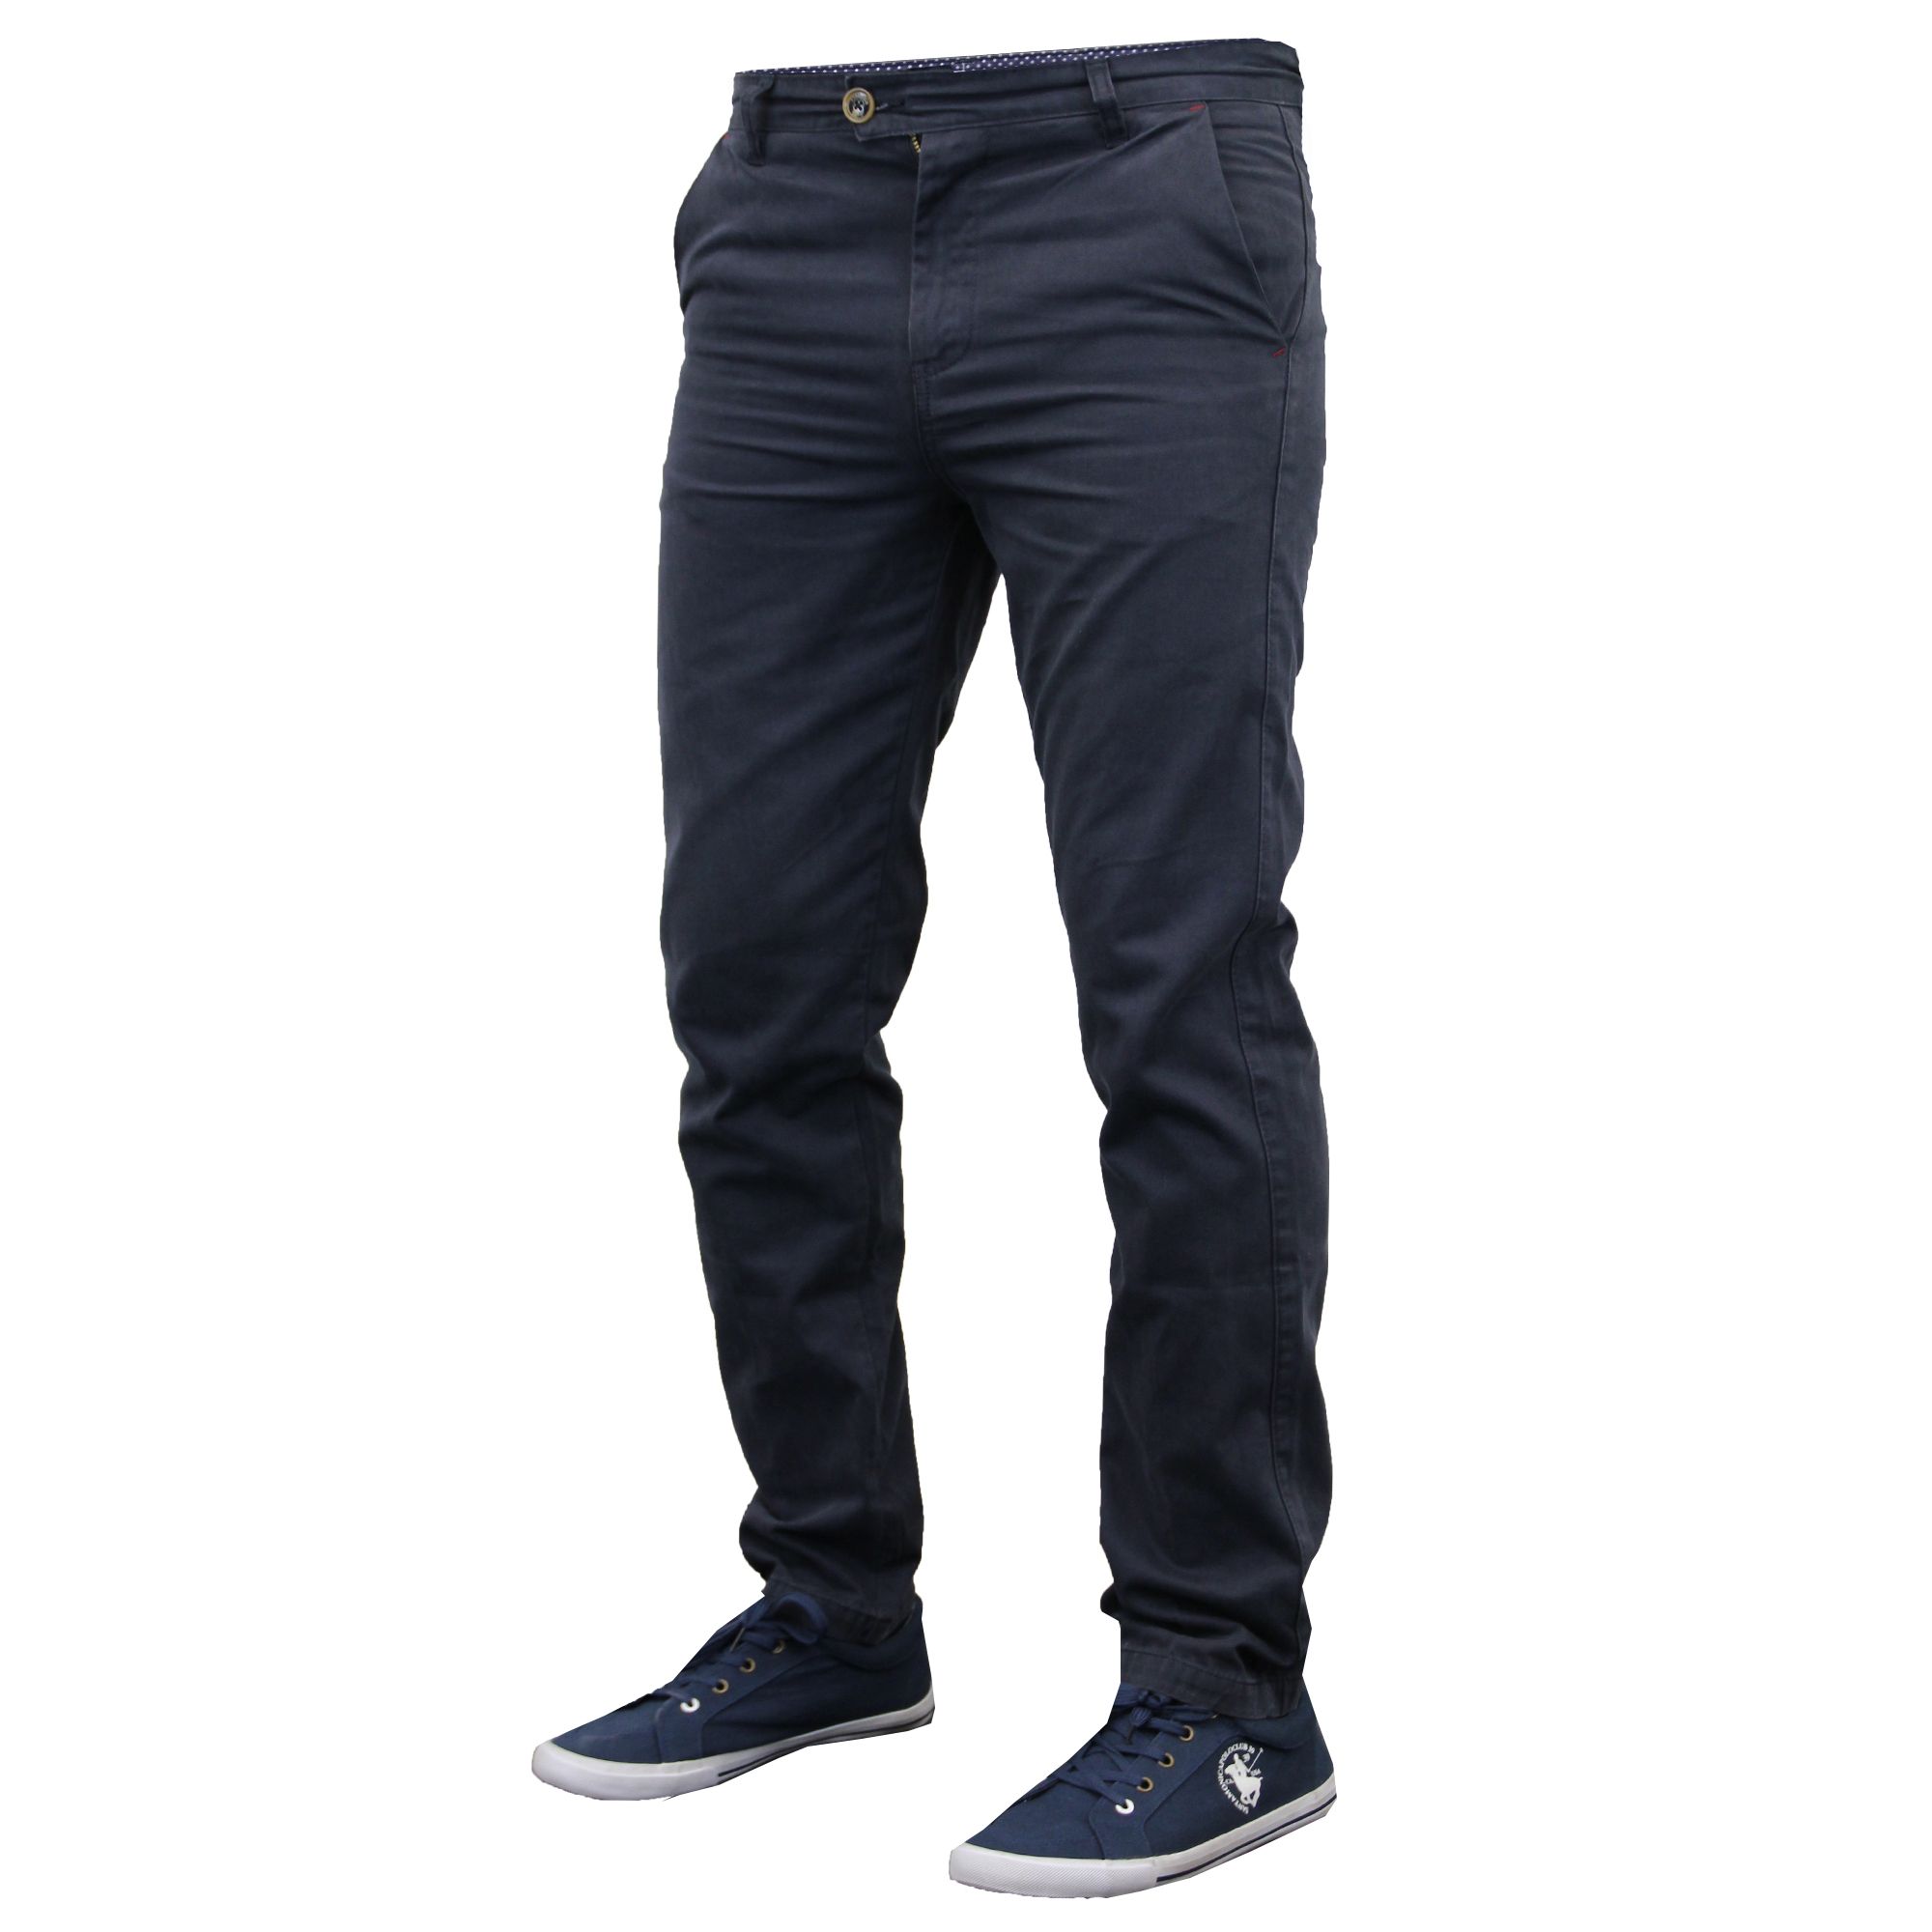 Mens Chino Jeans Stallion Bottoms Slim Fit Trousers Pants ...